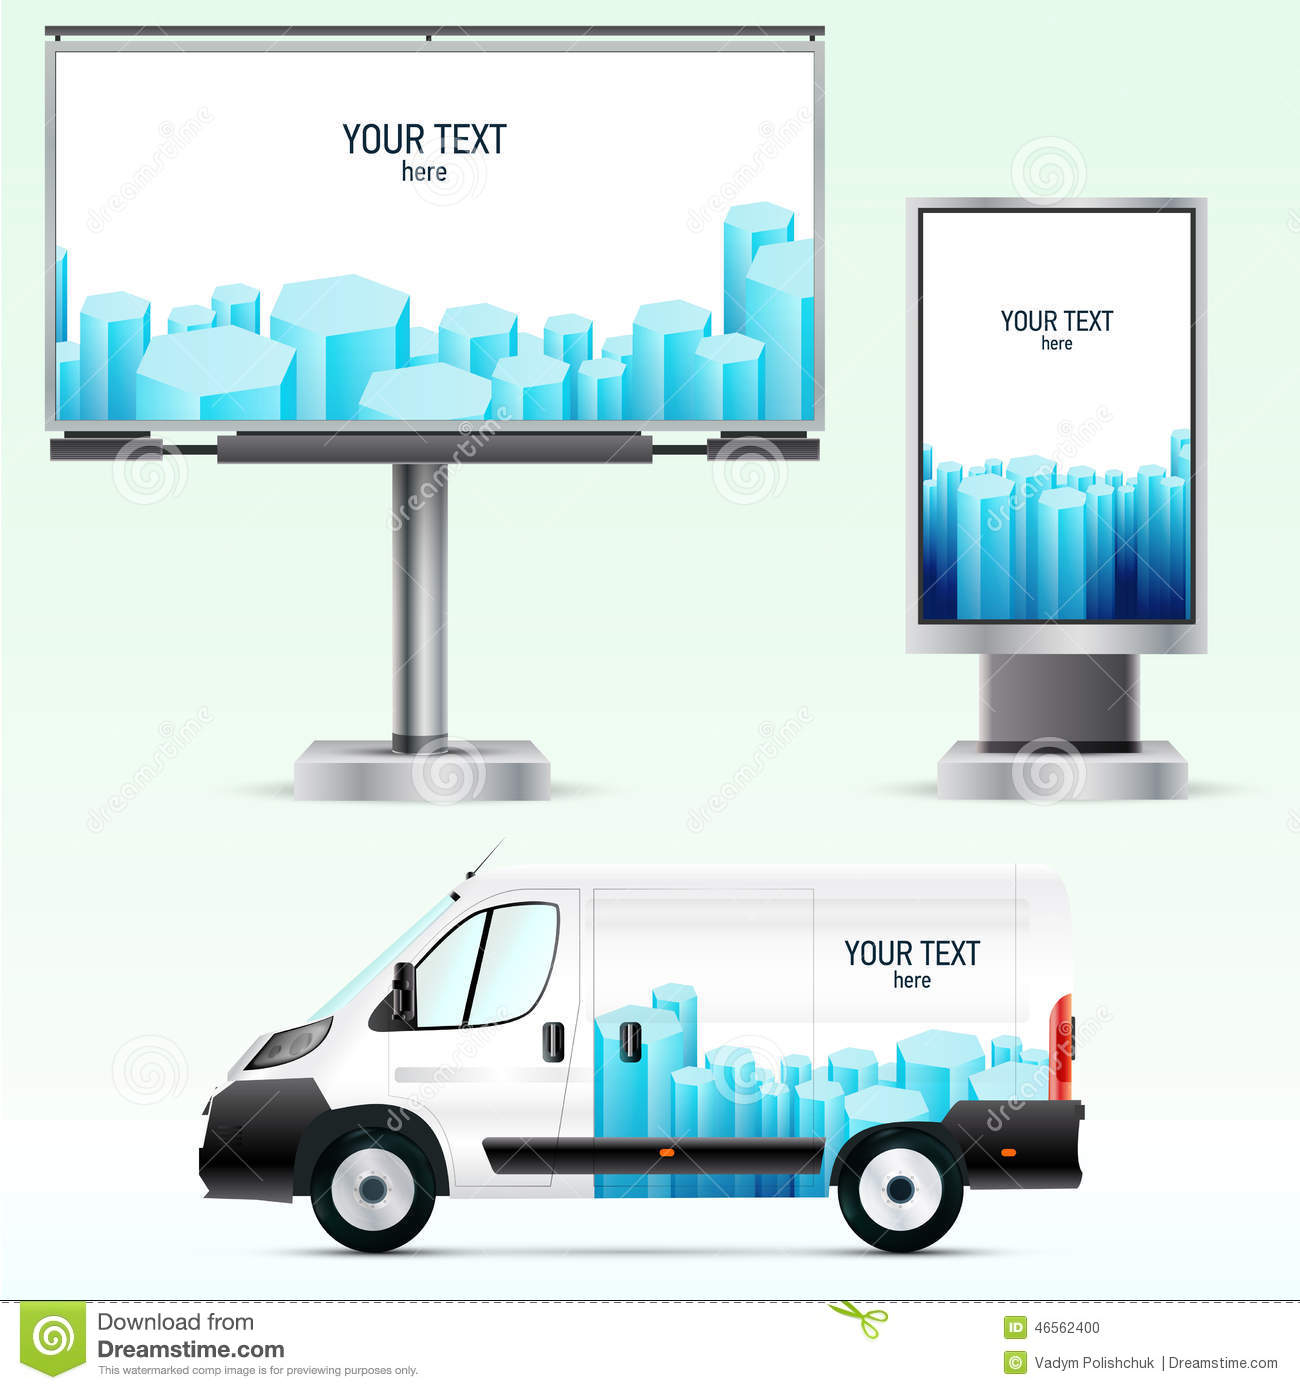 template outdoor advertising or corporate identity on the car template outdoor advertising or corporate identity on the car billboard and citylight